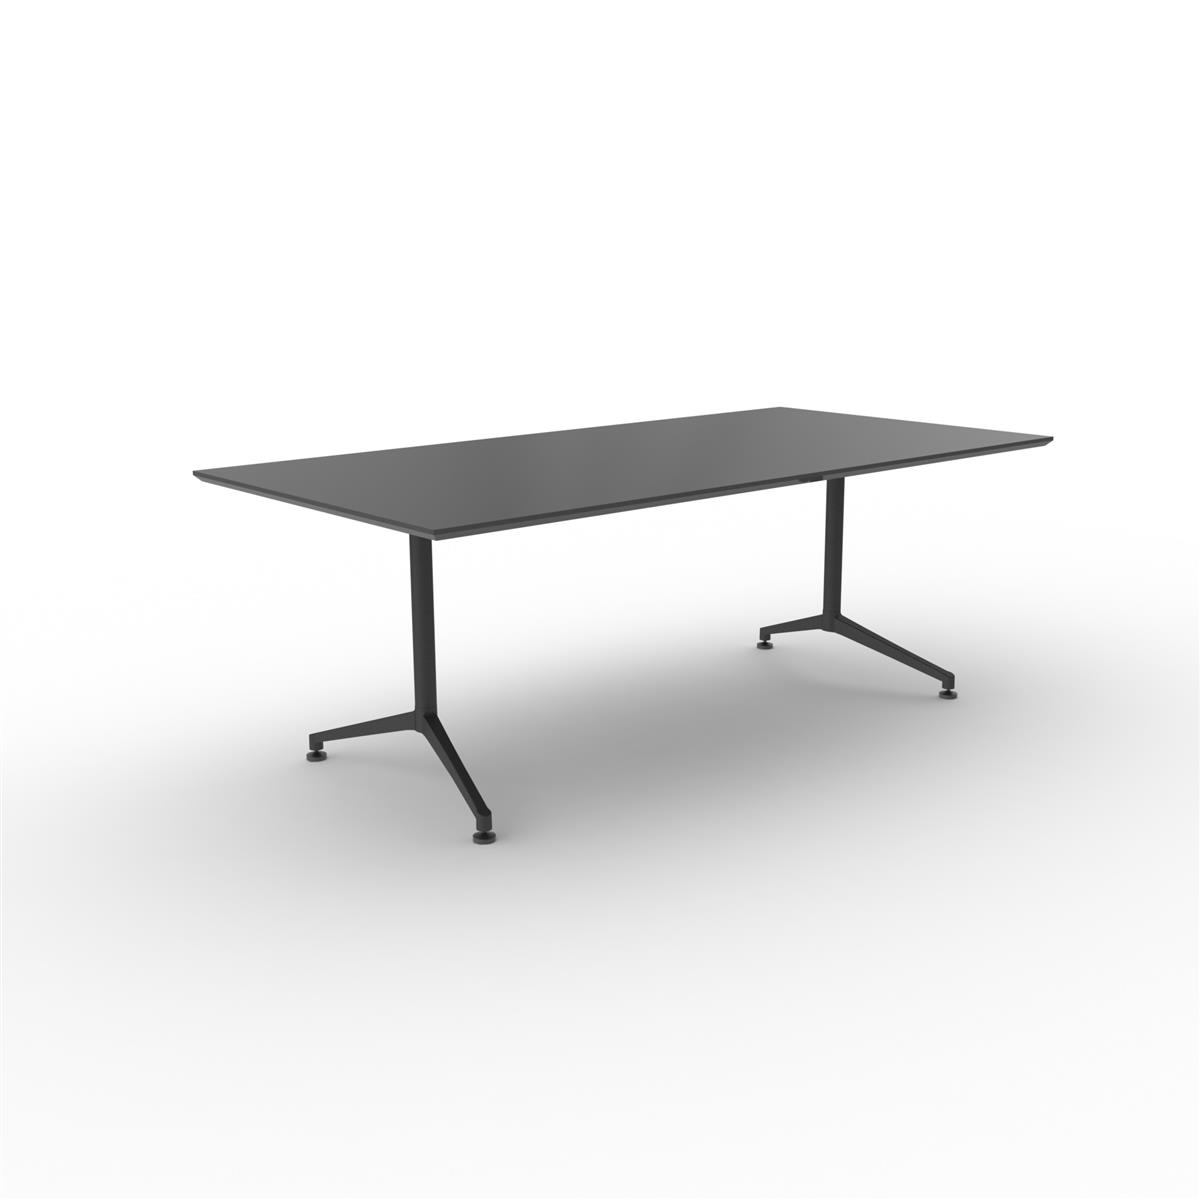 X1 Seamless Table 200 x 120 cm, sort linoleum med sort understell